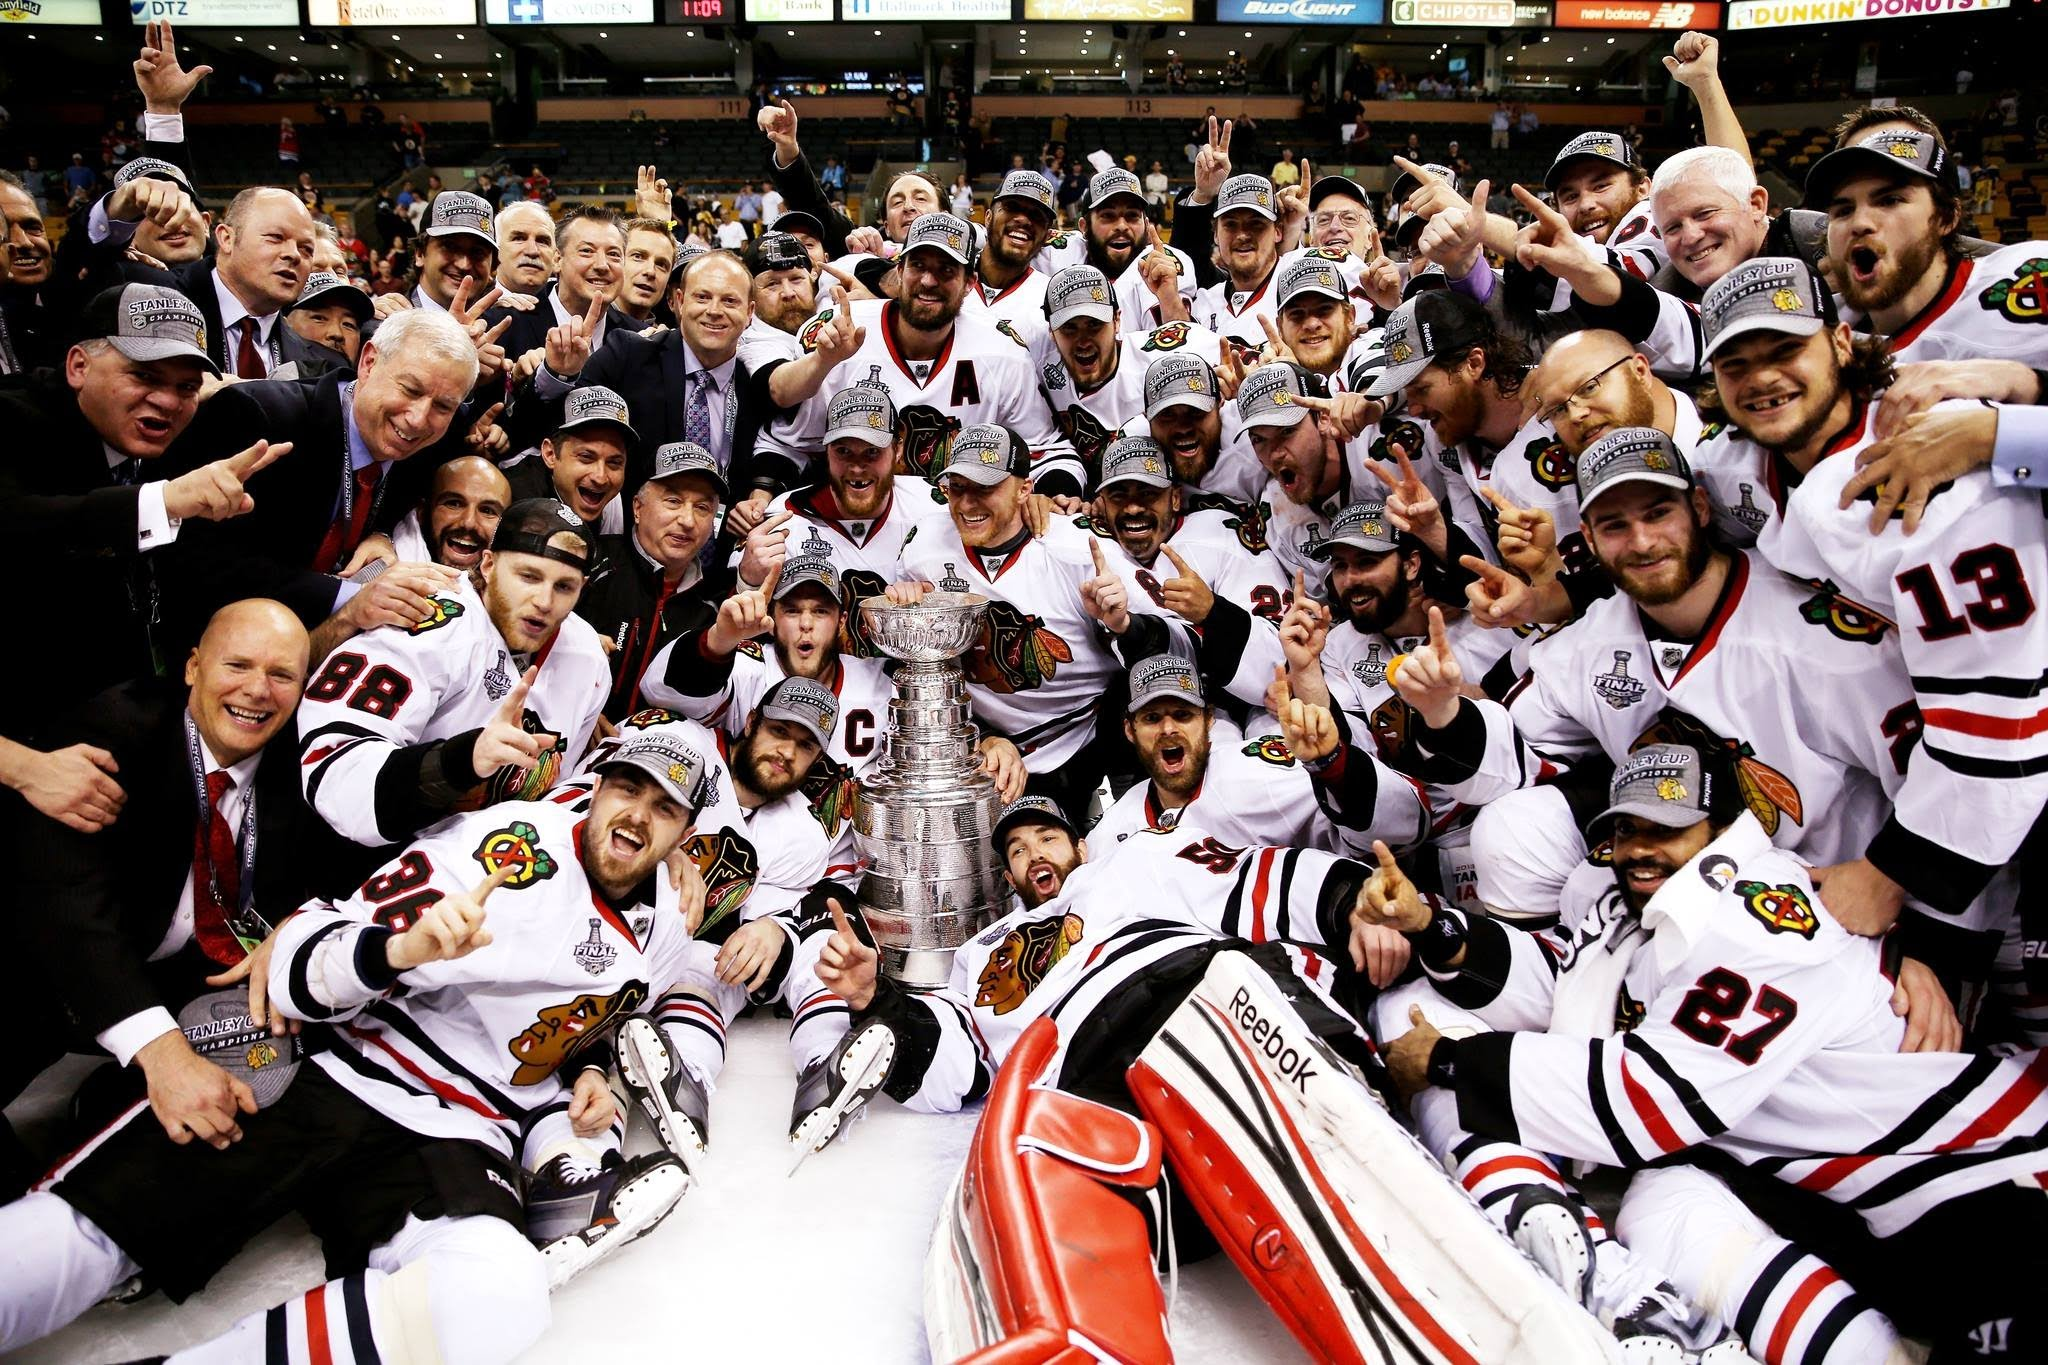 Chicago Blackhawks Stanley Cup - 562.4KB